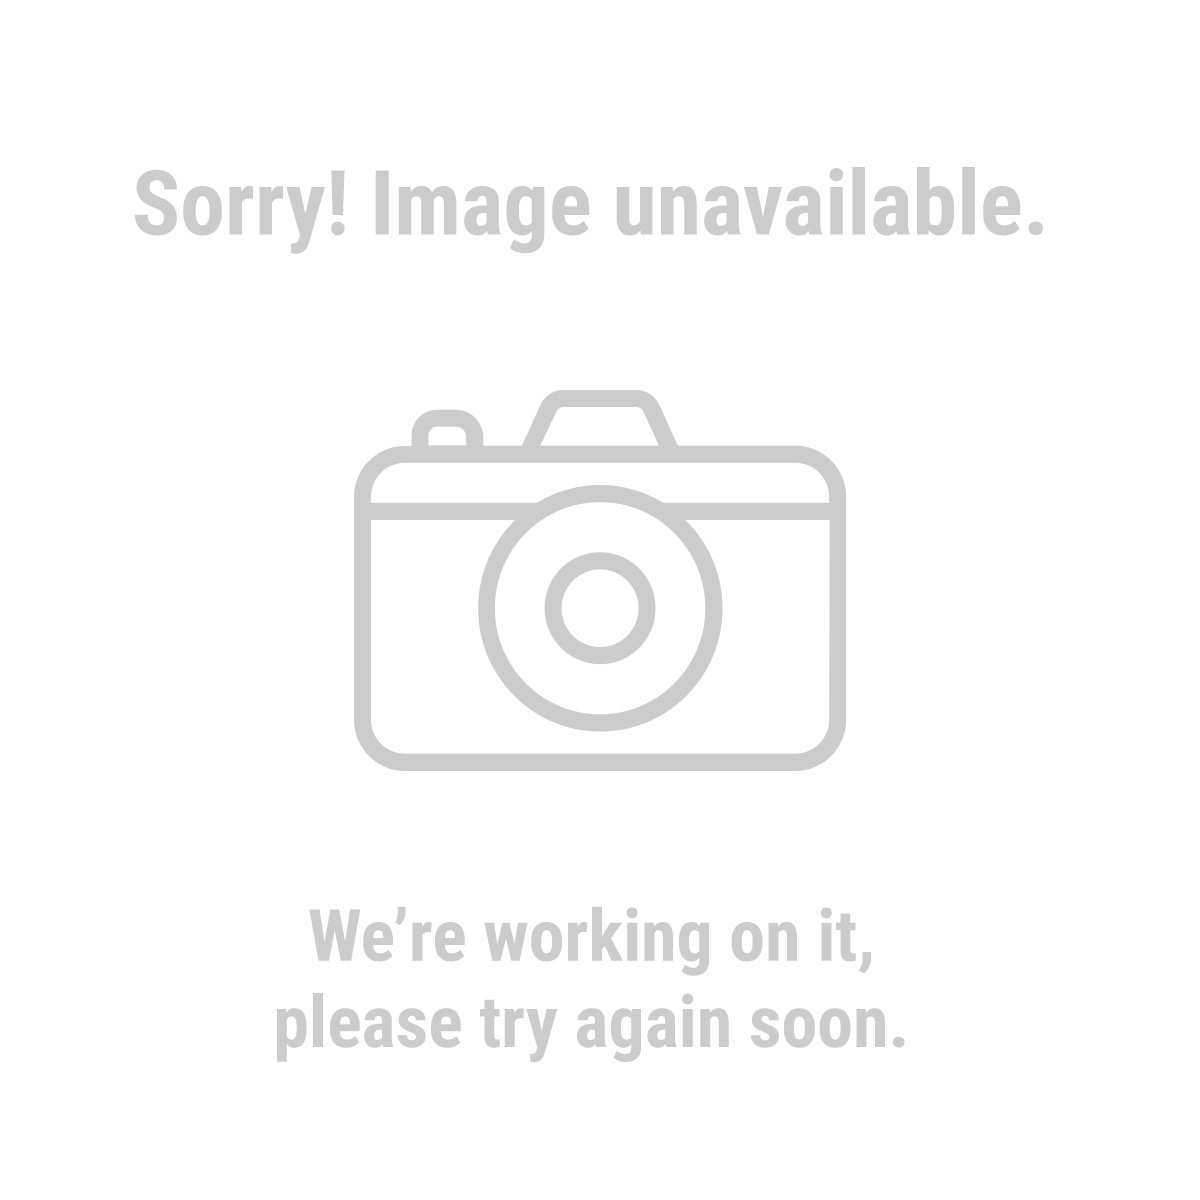 HFT® 69196 7 ft. 4 in. x 9 ft. 6 in. Green/Farm All Purpose/Weather Resistant Tarp